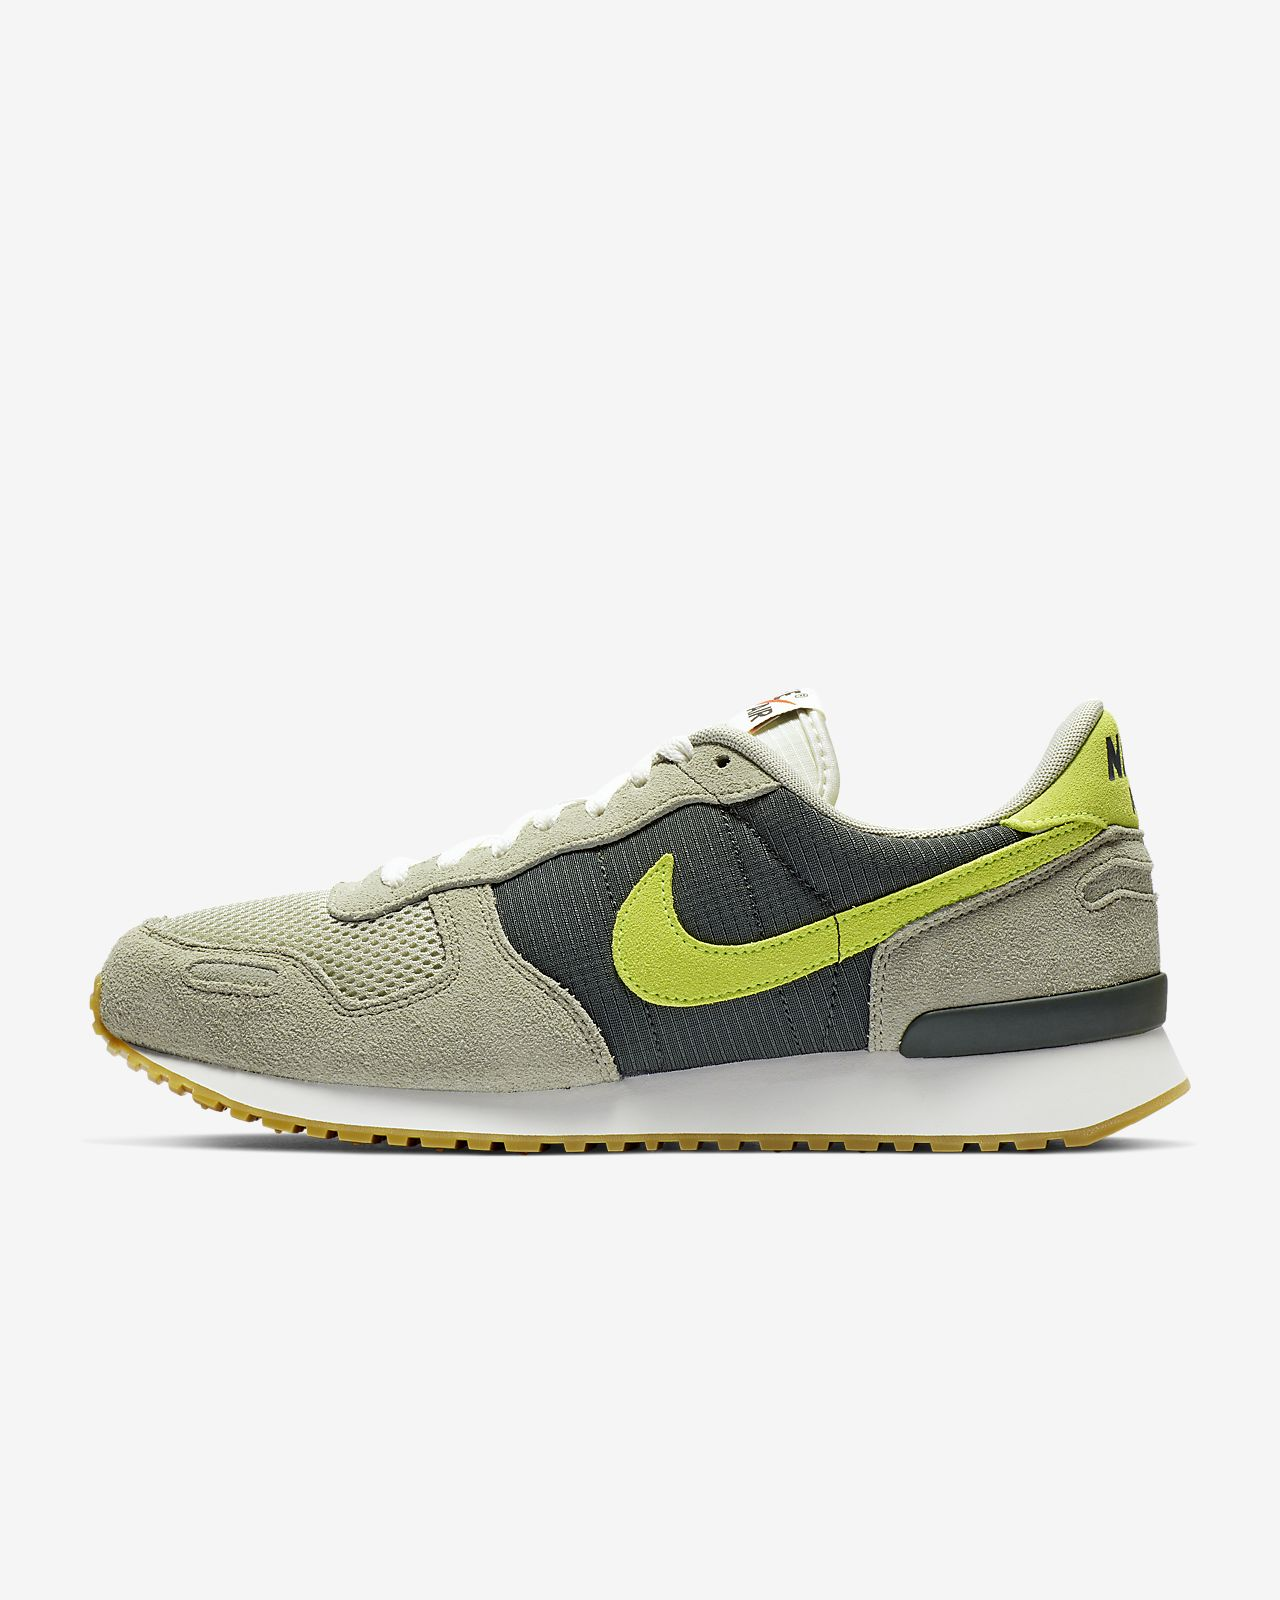 the best attitude 082c3 e7ee0 Chaussure Nike Air Vortex pour Homme